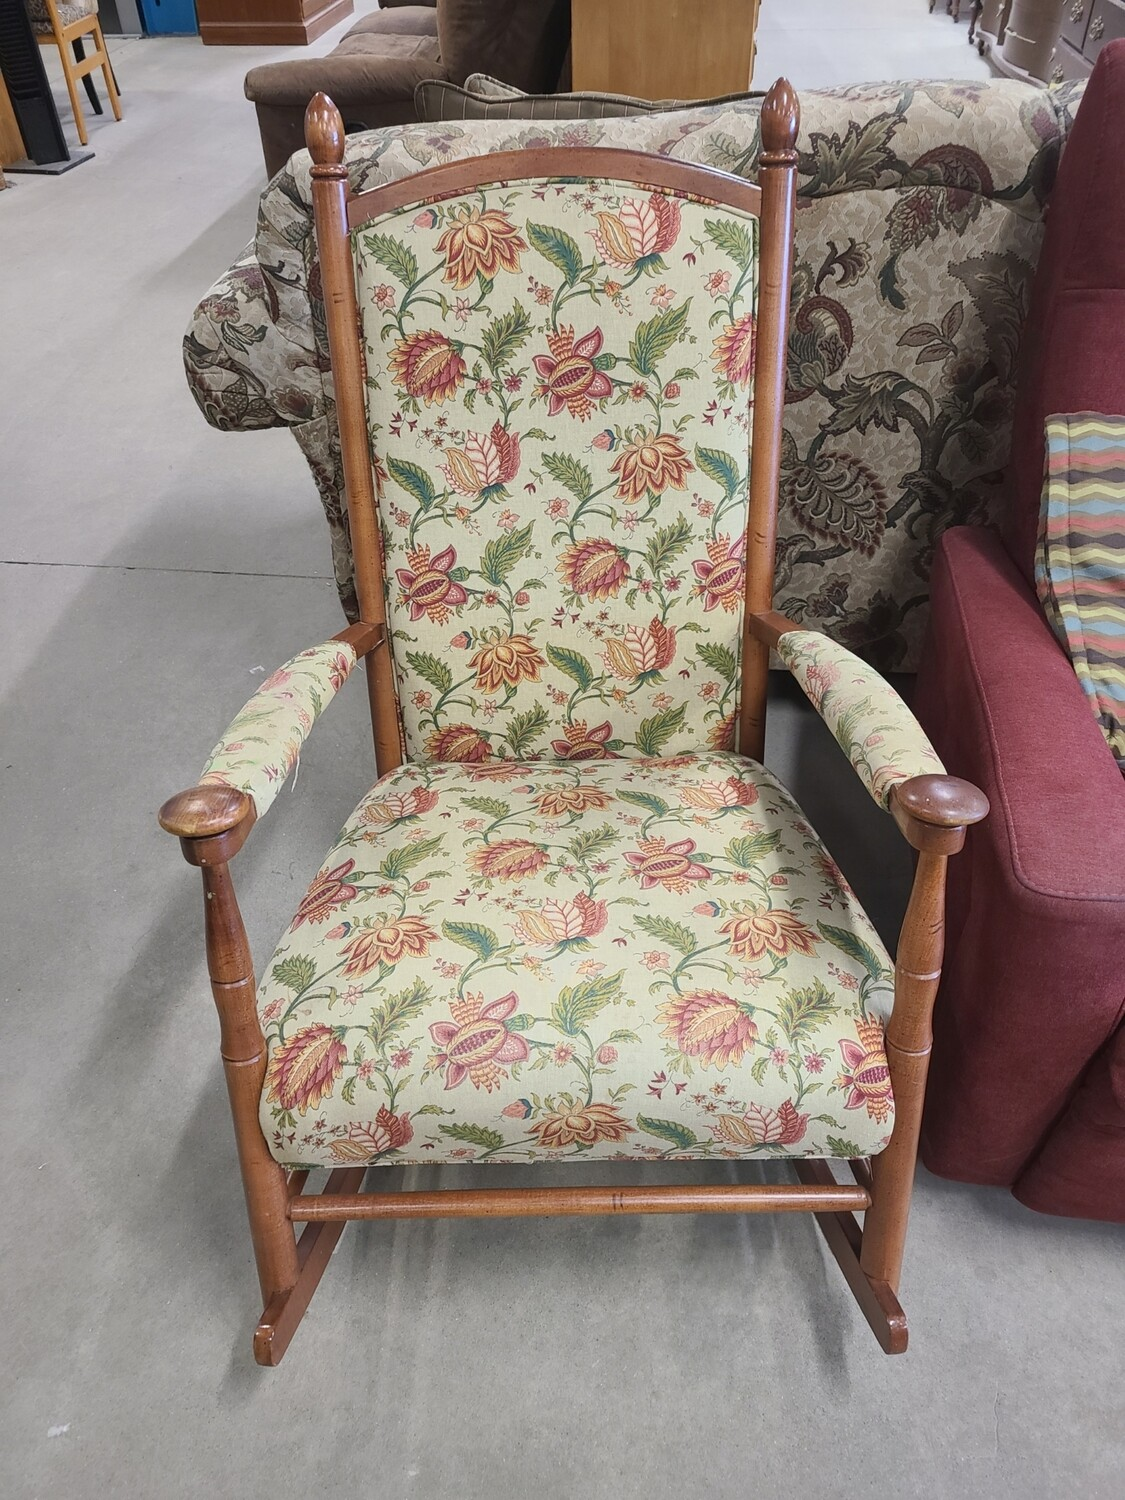 Floral Rocking Chair